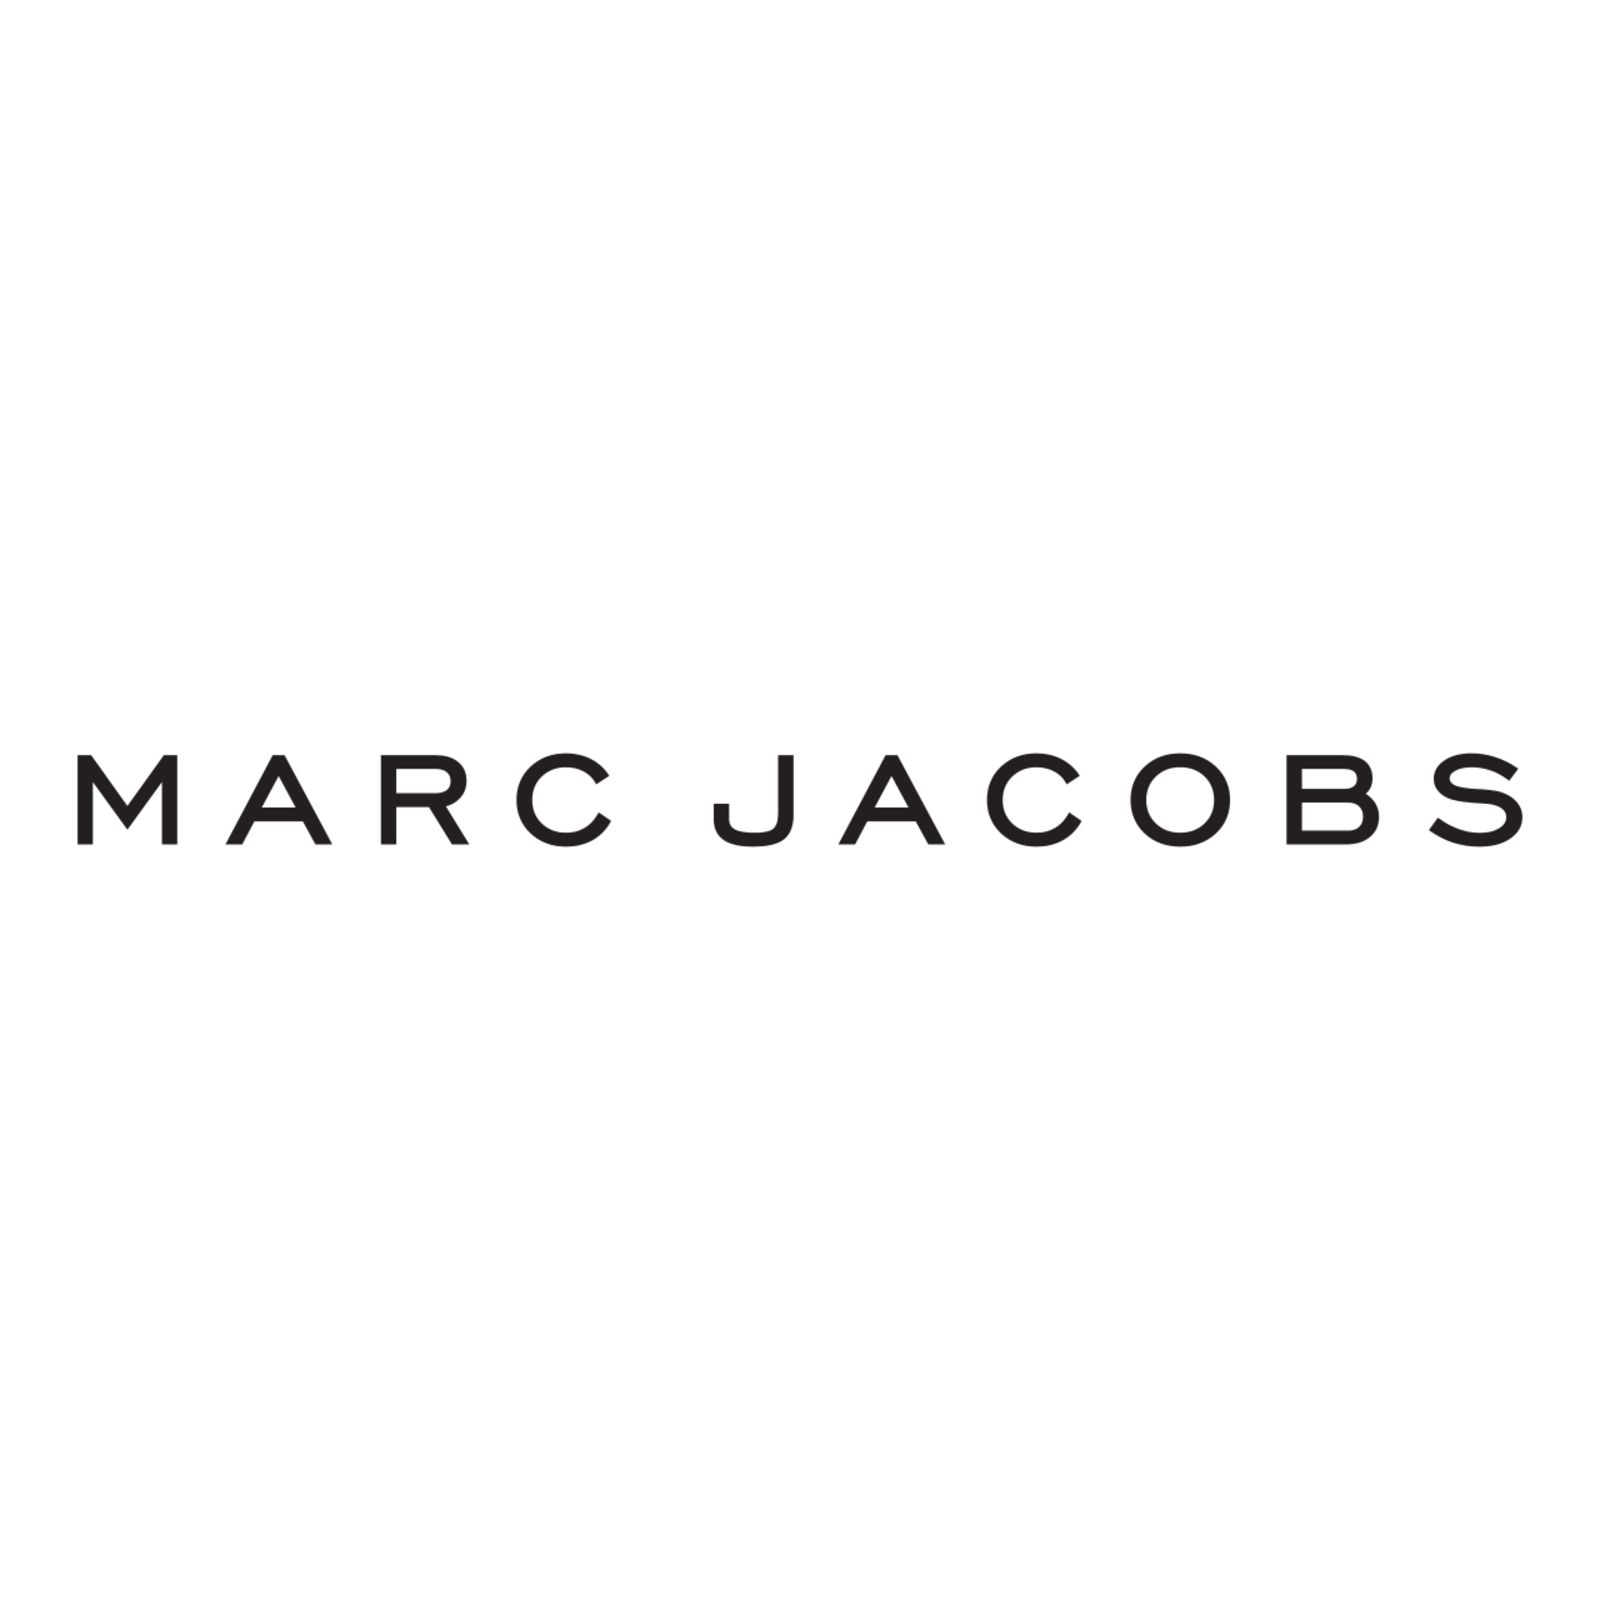 MARC JACOBS (Image 1)